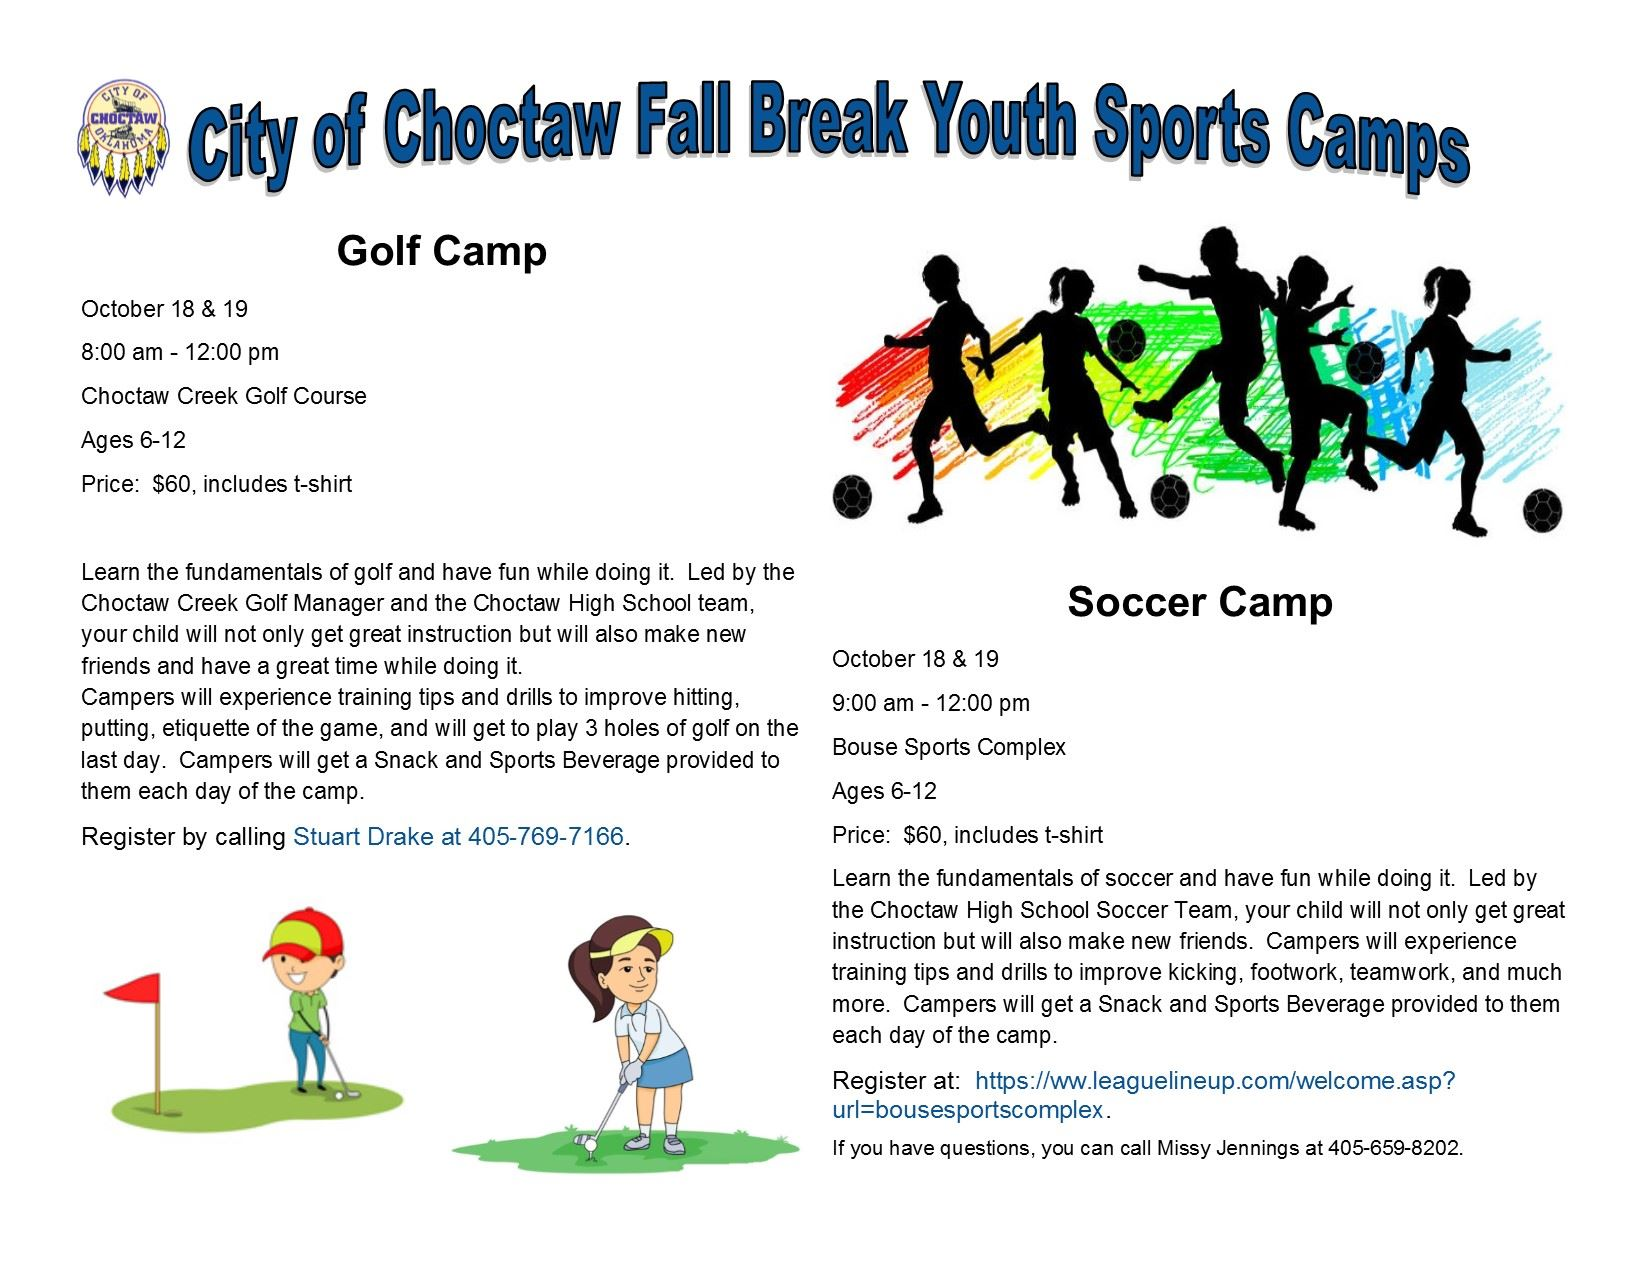 2018 Fall Break Youth Sports Camps